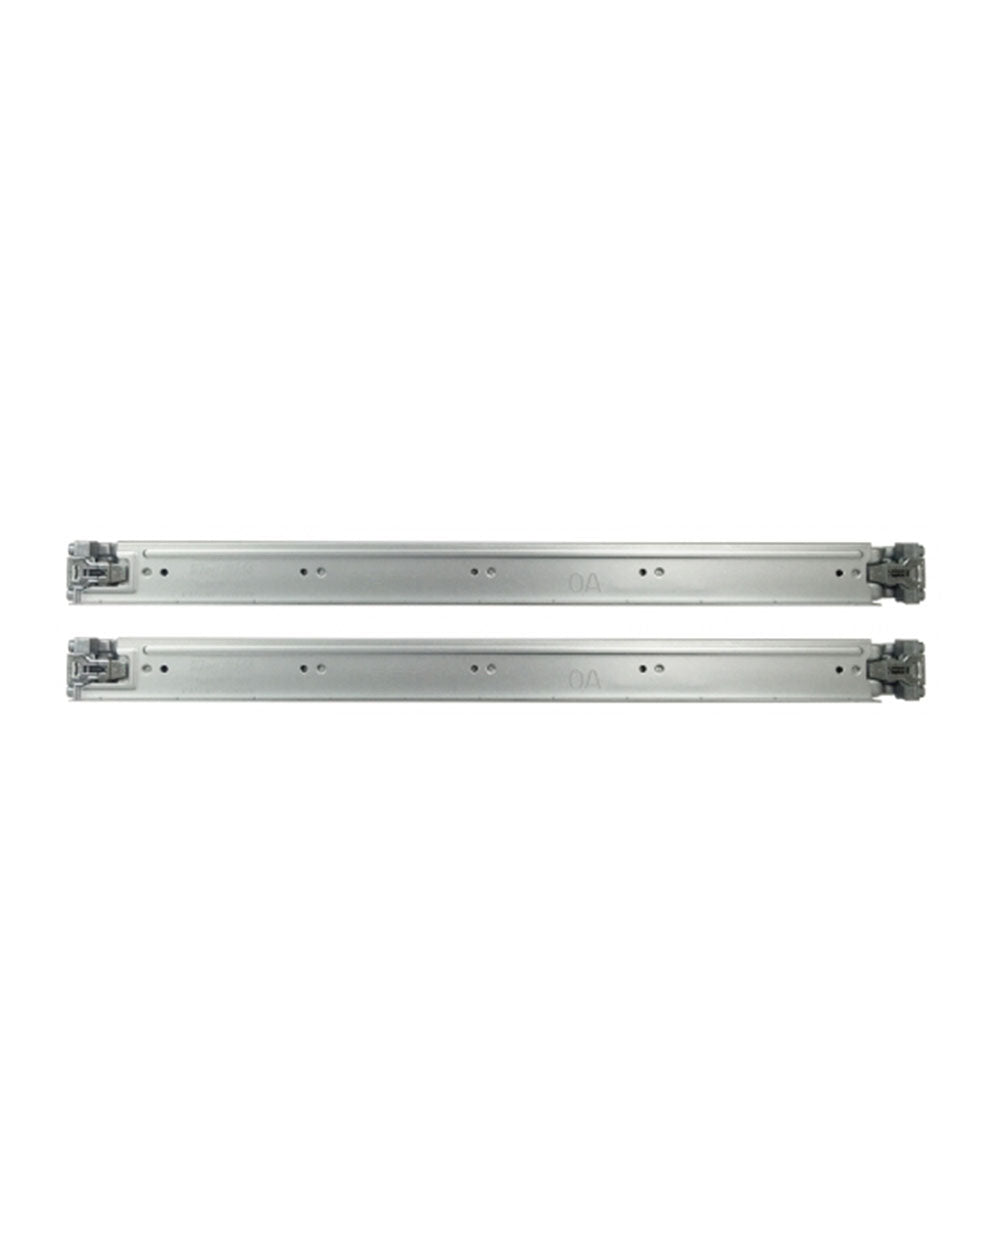 QNAP Rack Silde Rail Kit for ES2486dc